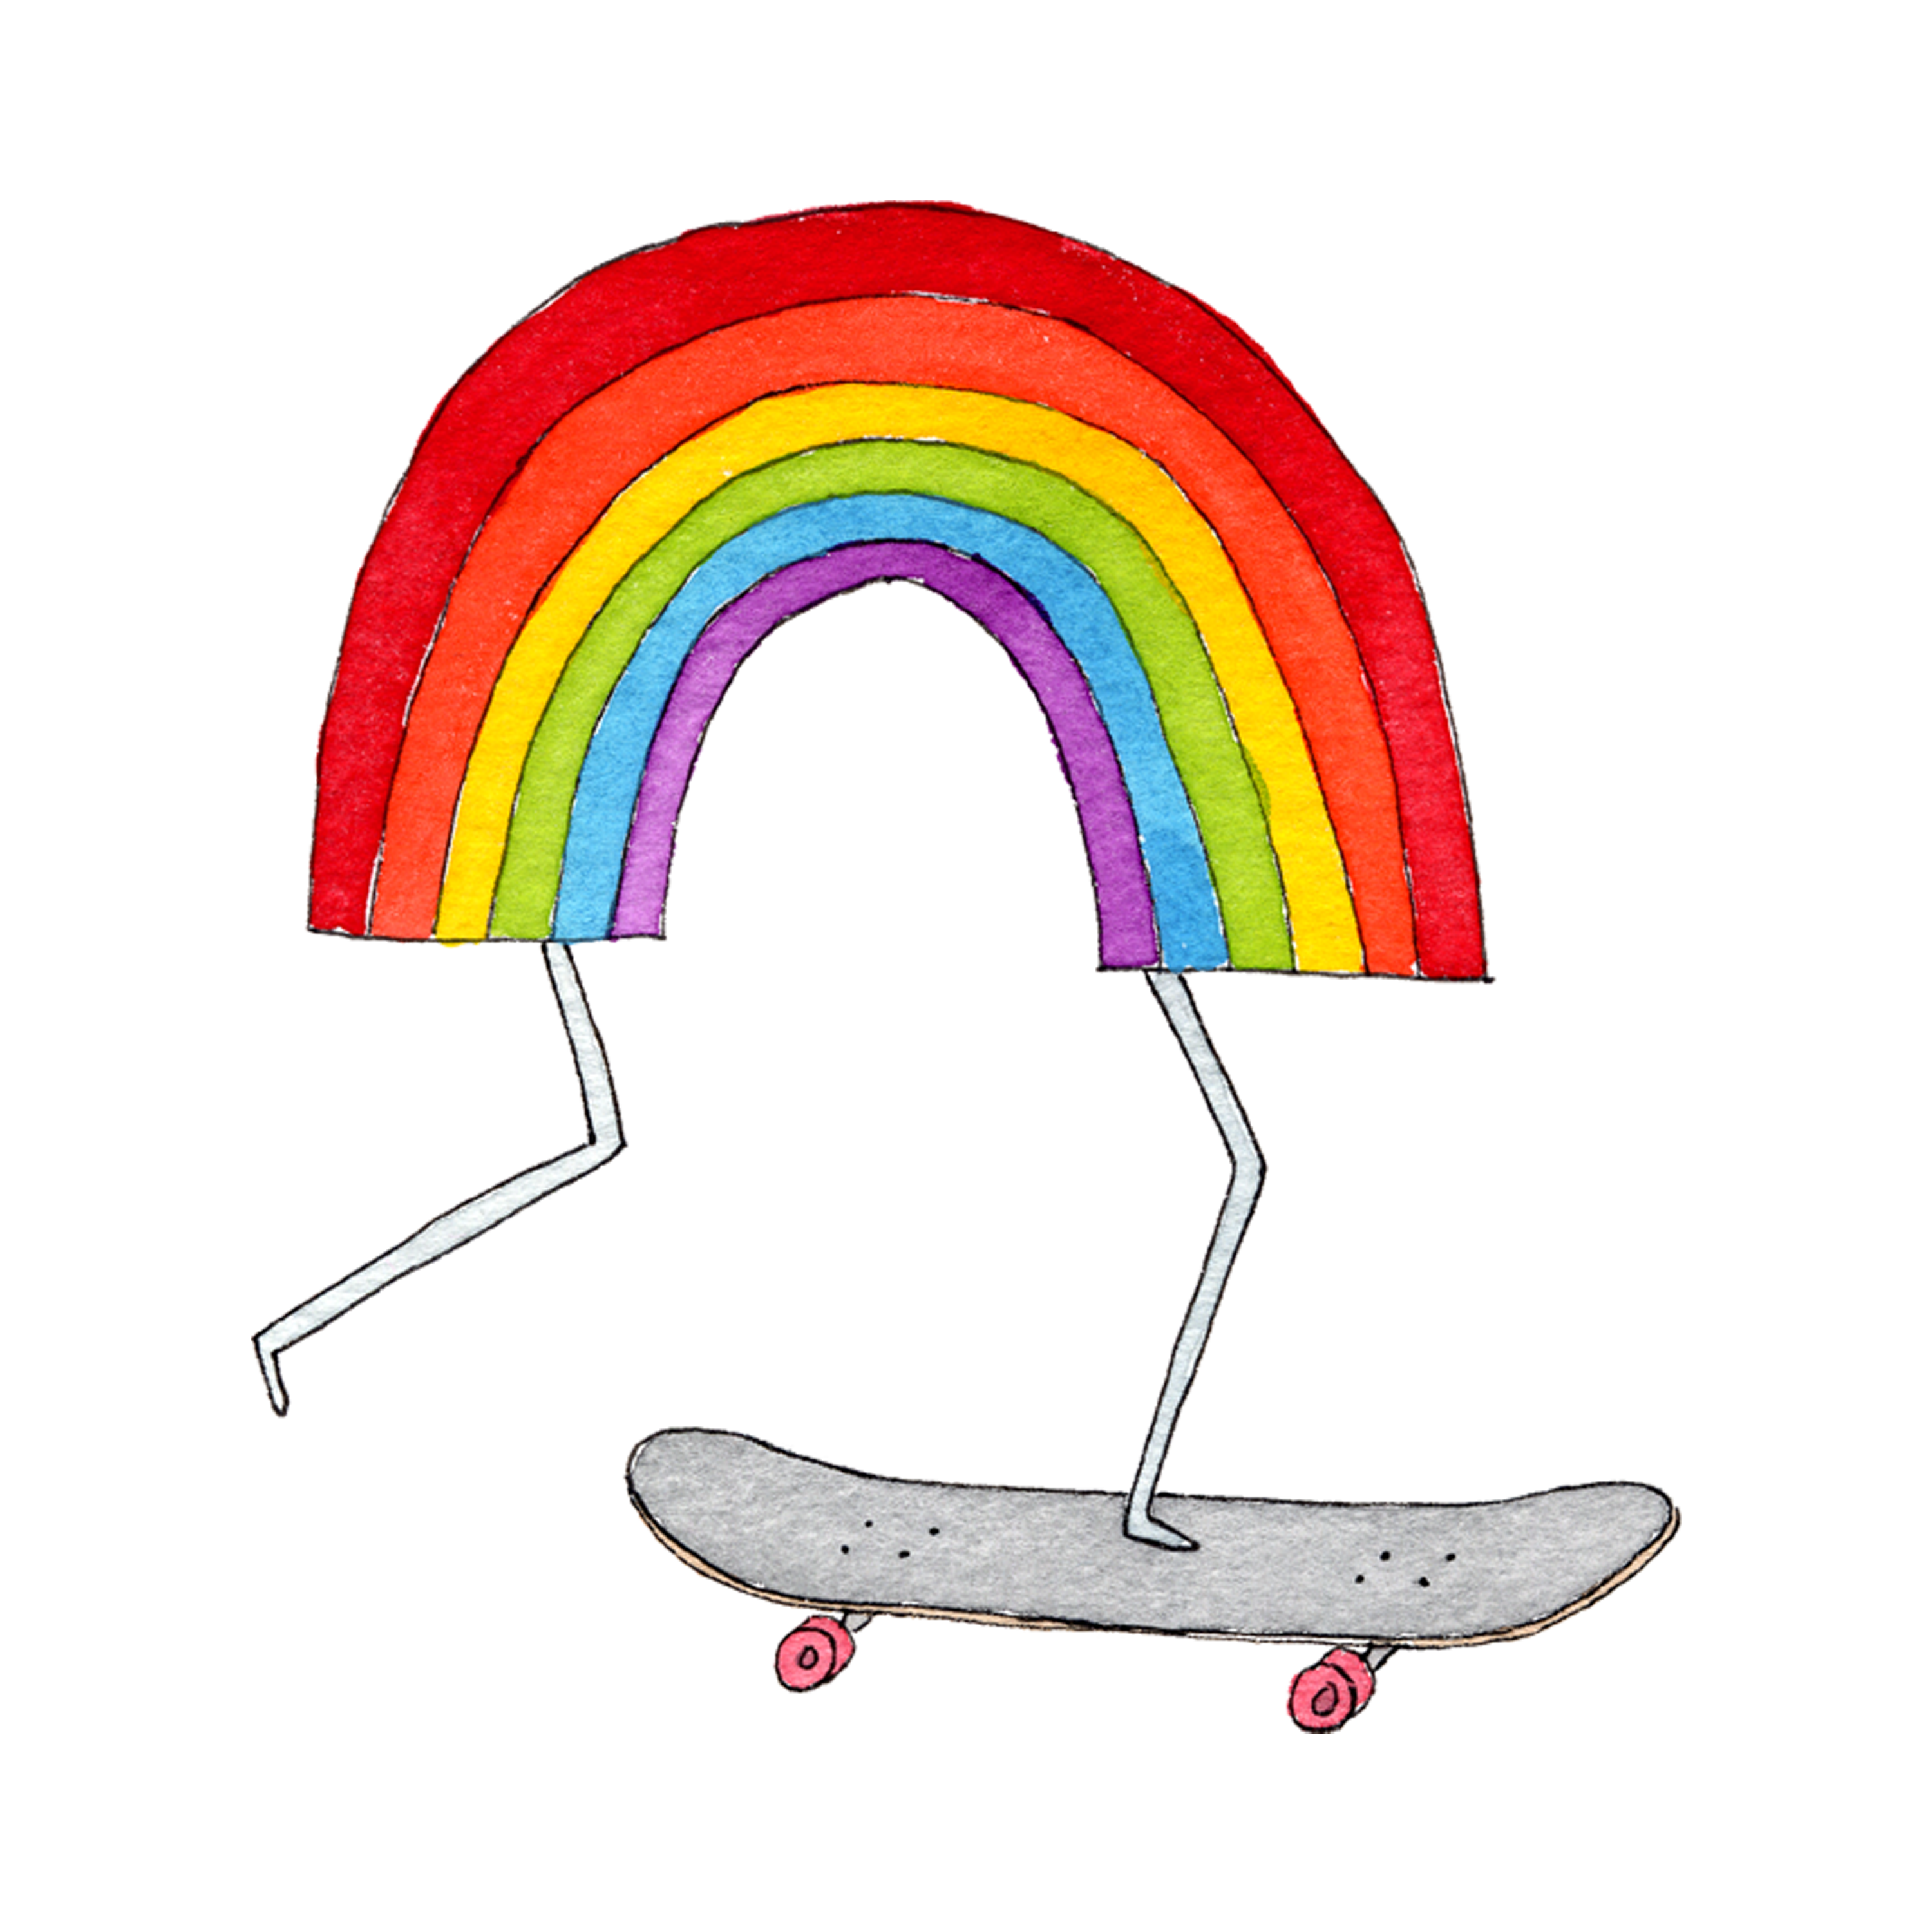 Skateboard illustration png. Rainbow by marc johns